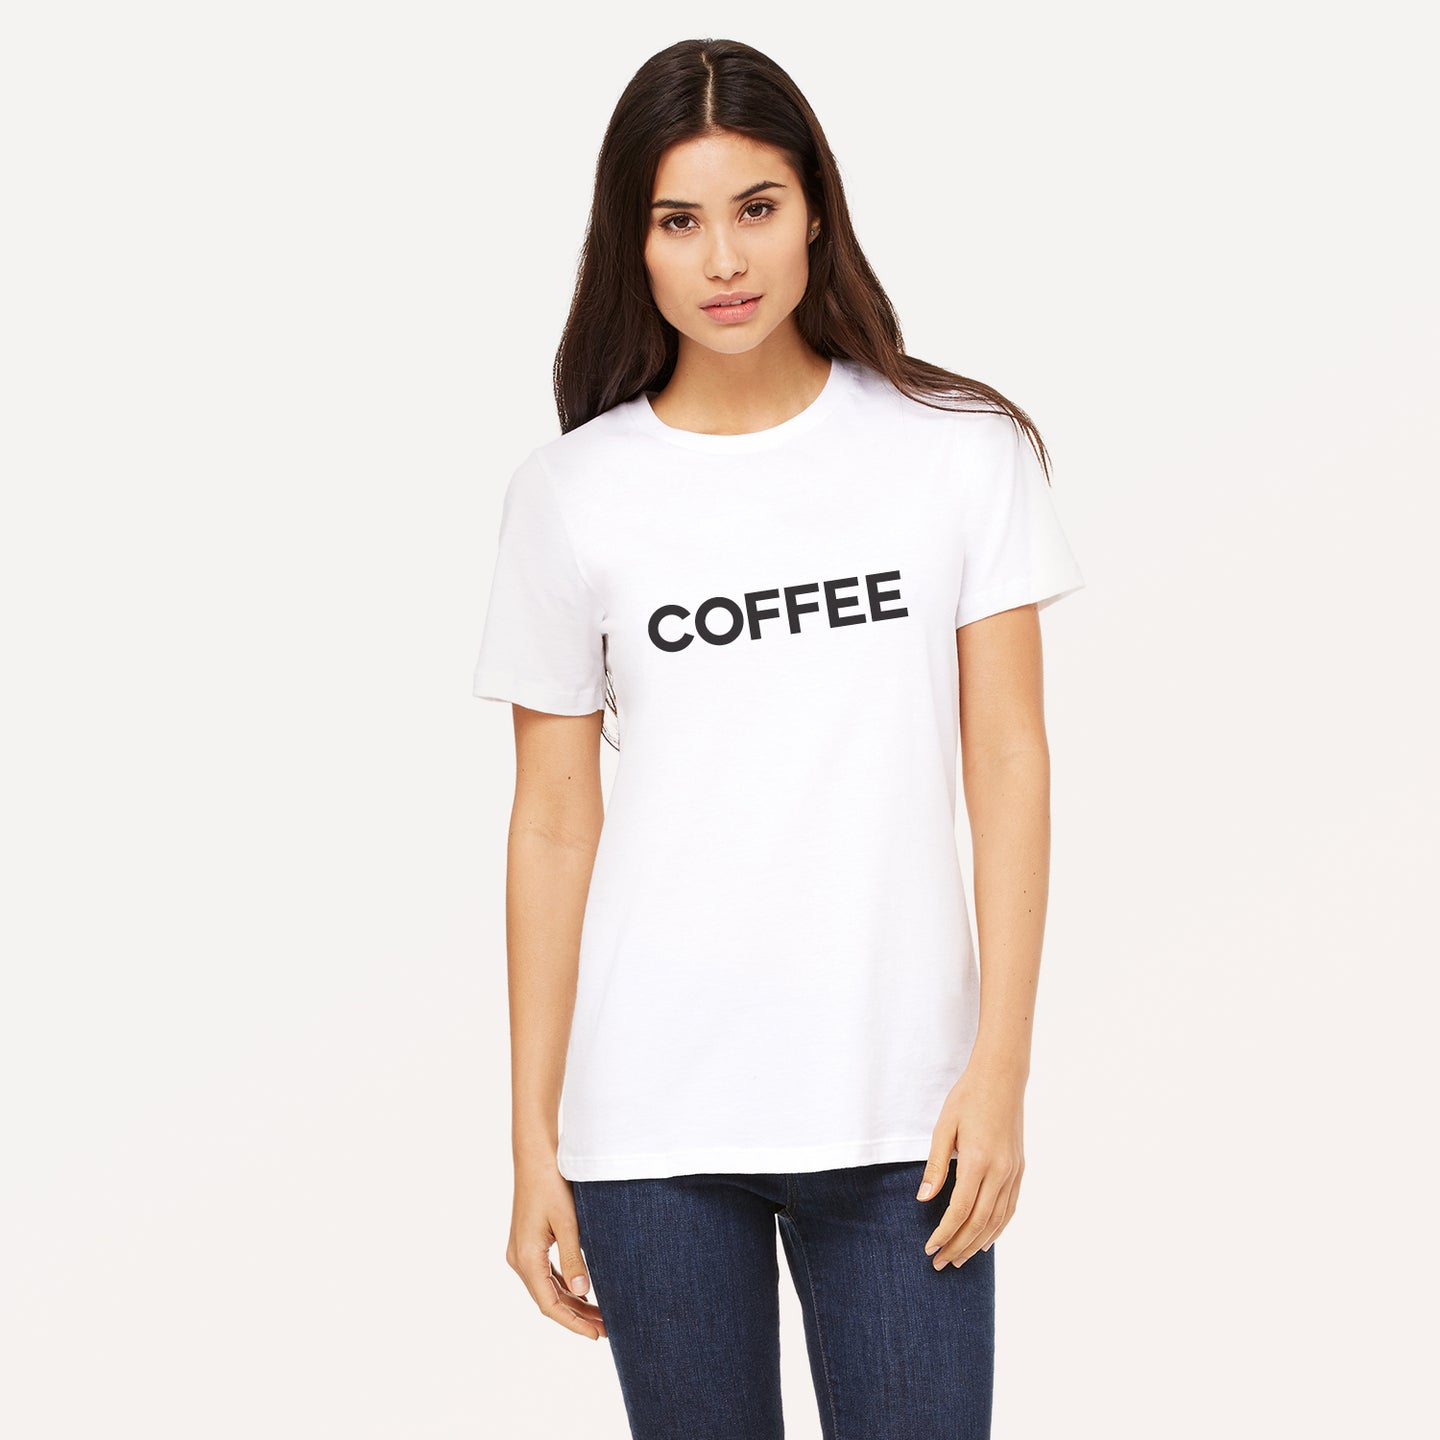 Coffee graphic screenprinted in black on a white unisex relaxed cotton jersey t-shirt.